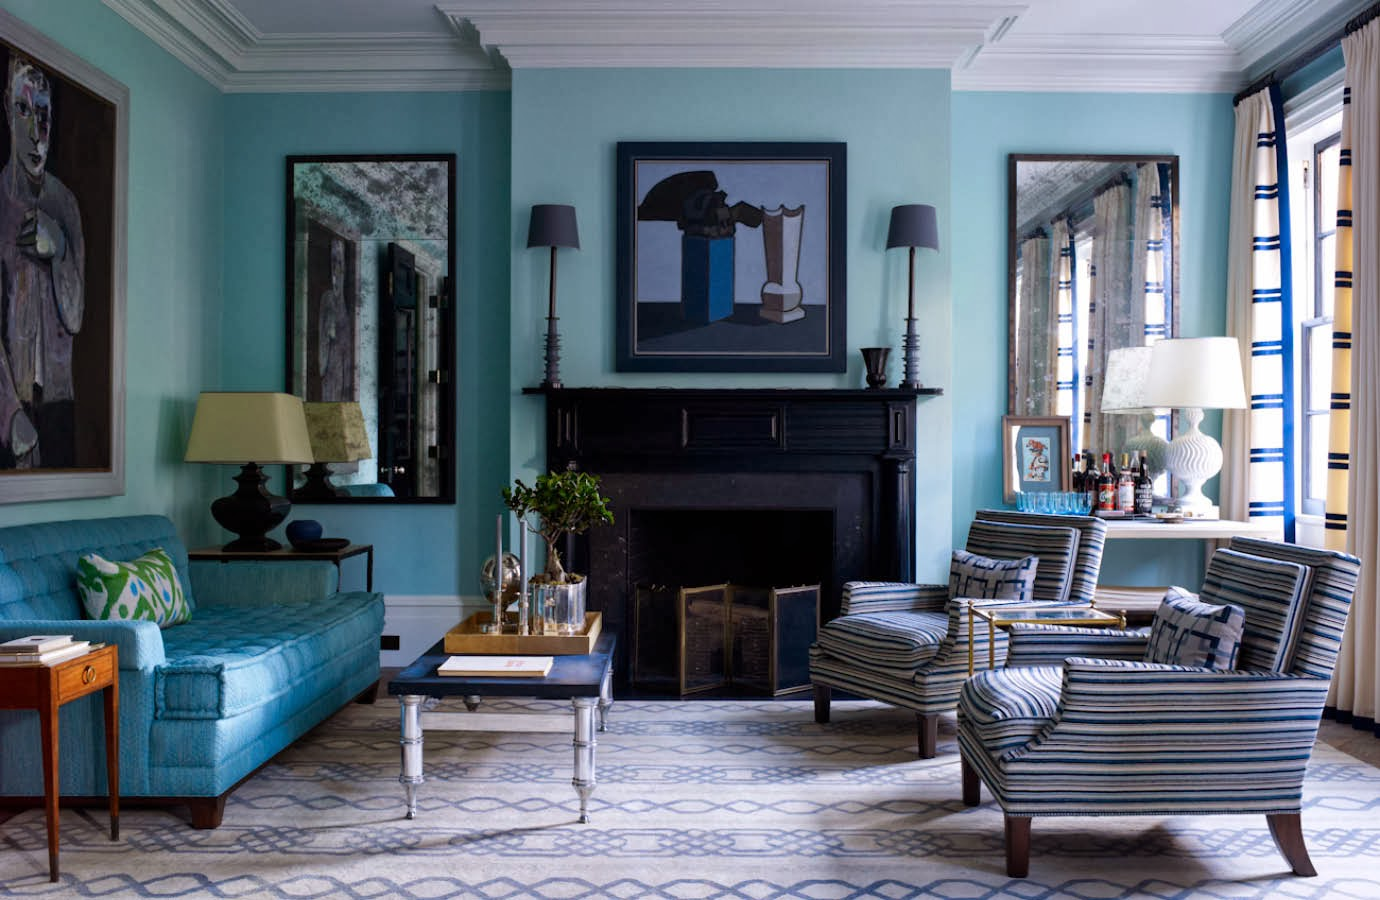 The texture of teal and turquoise a bold and beautiful for Room interior design ideas